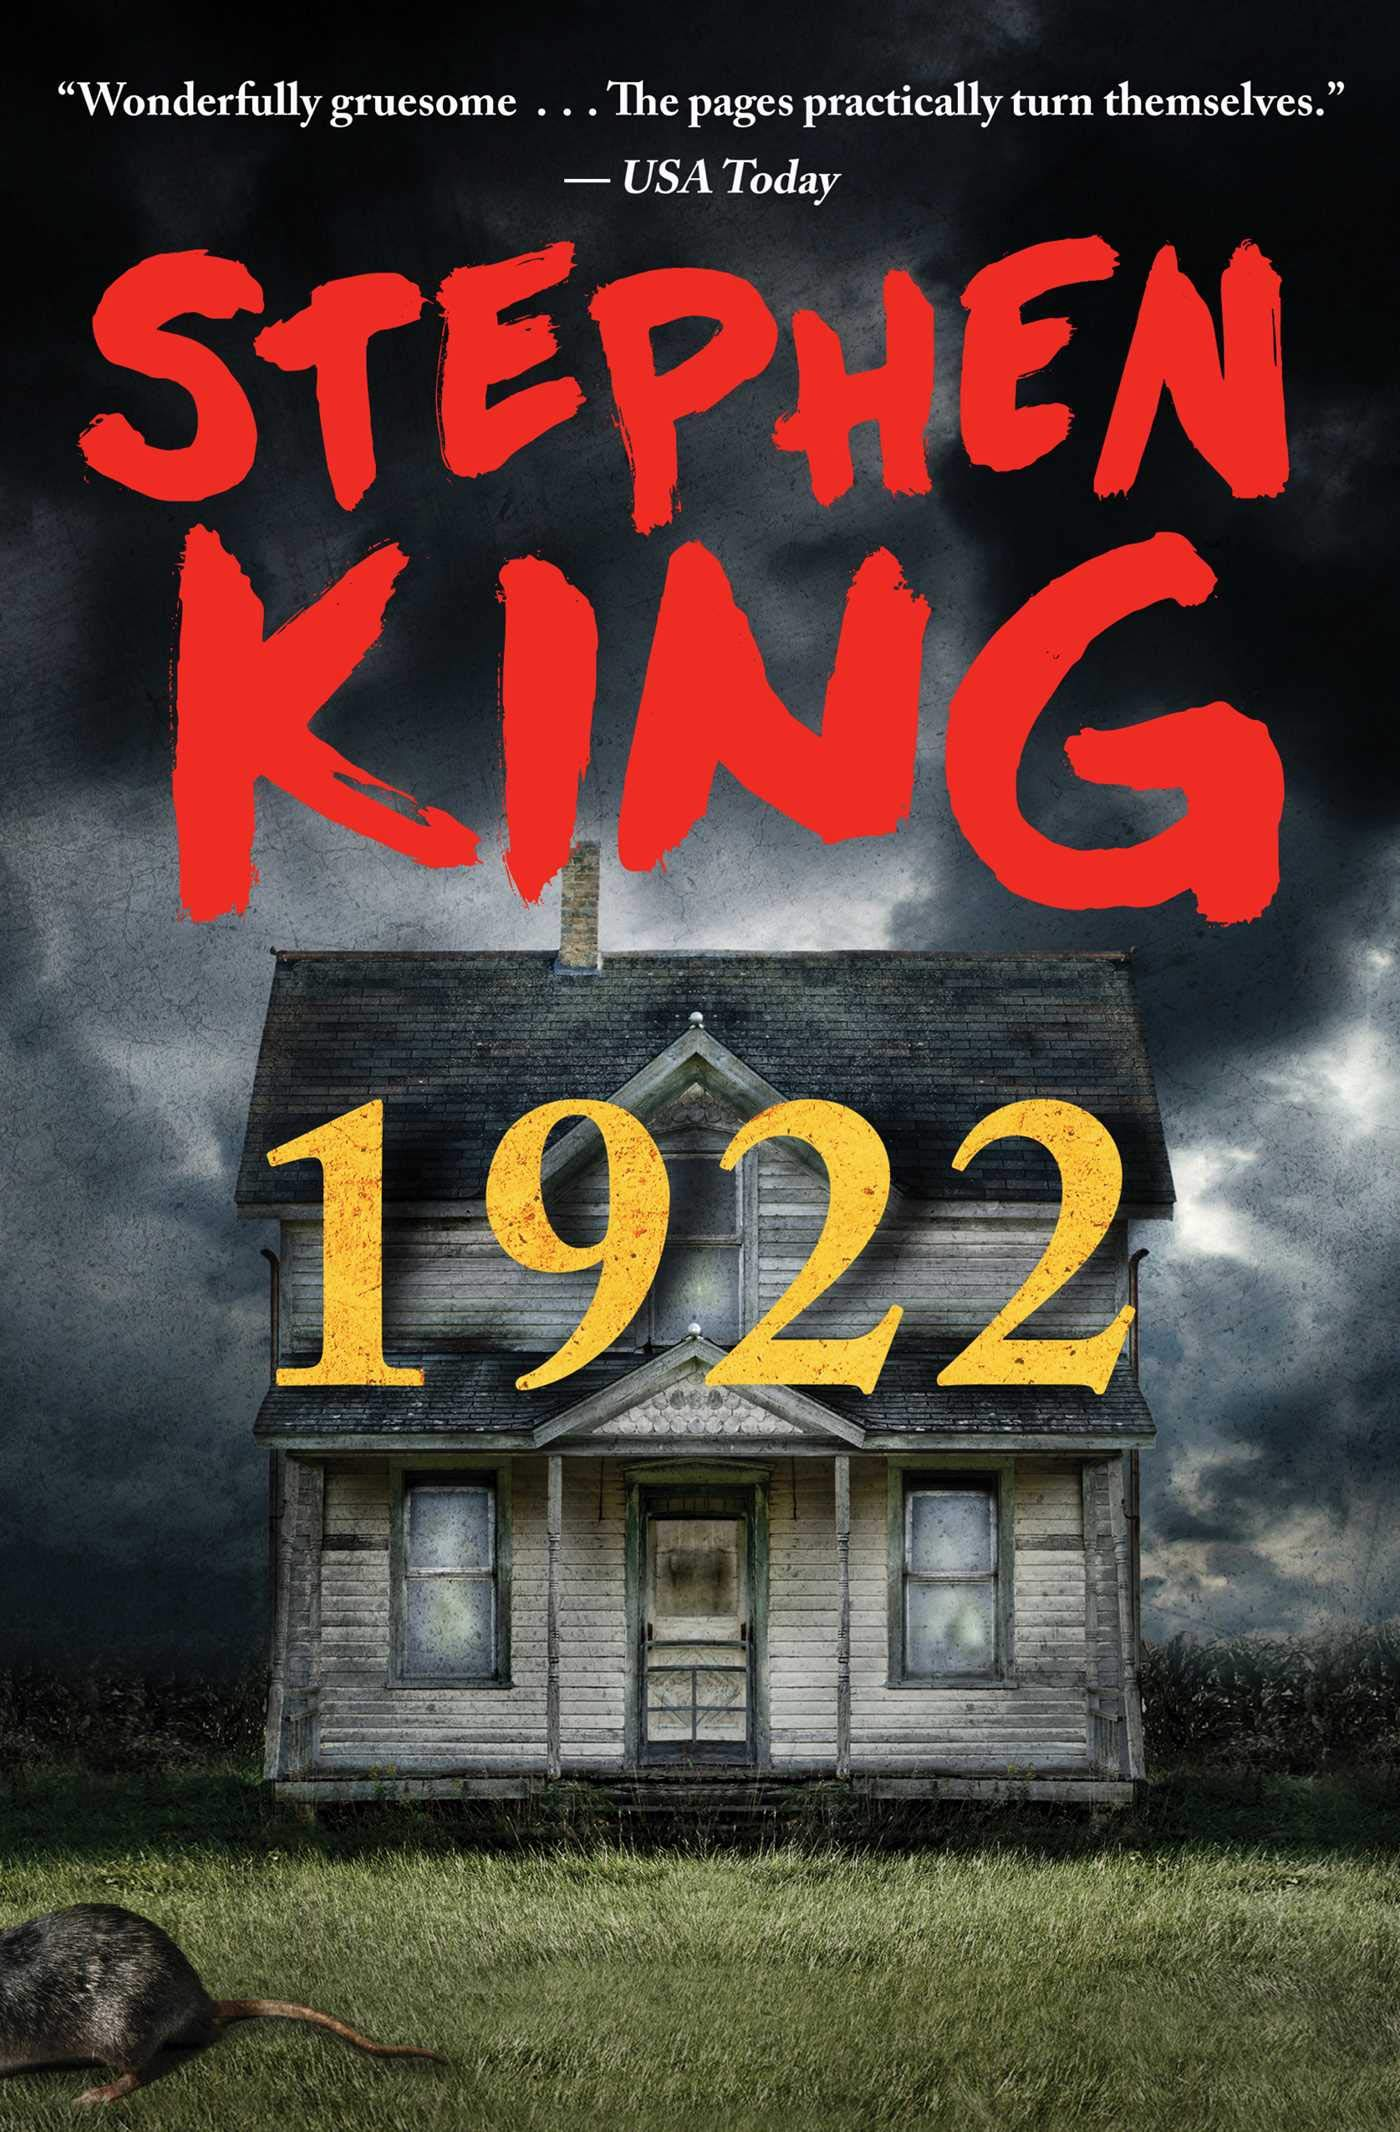 Amazon Salon De Jardin Aluminium Unique Amazon 1922 Stephen King Livres Of 40 Nouveau Amazon Salon De Jardin Aluminium